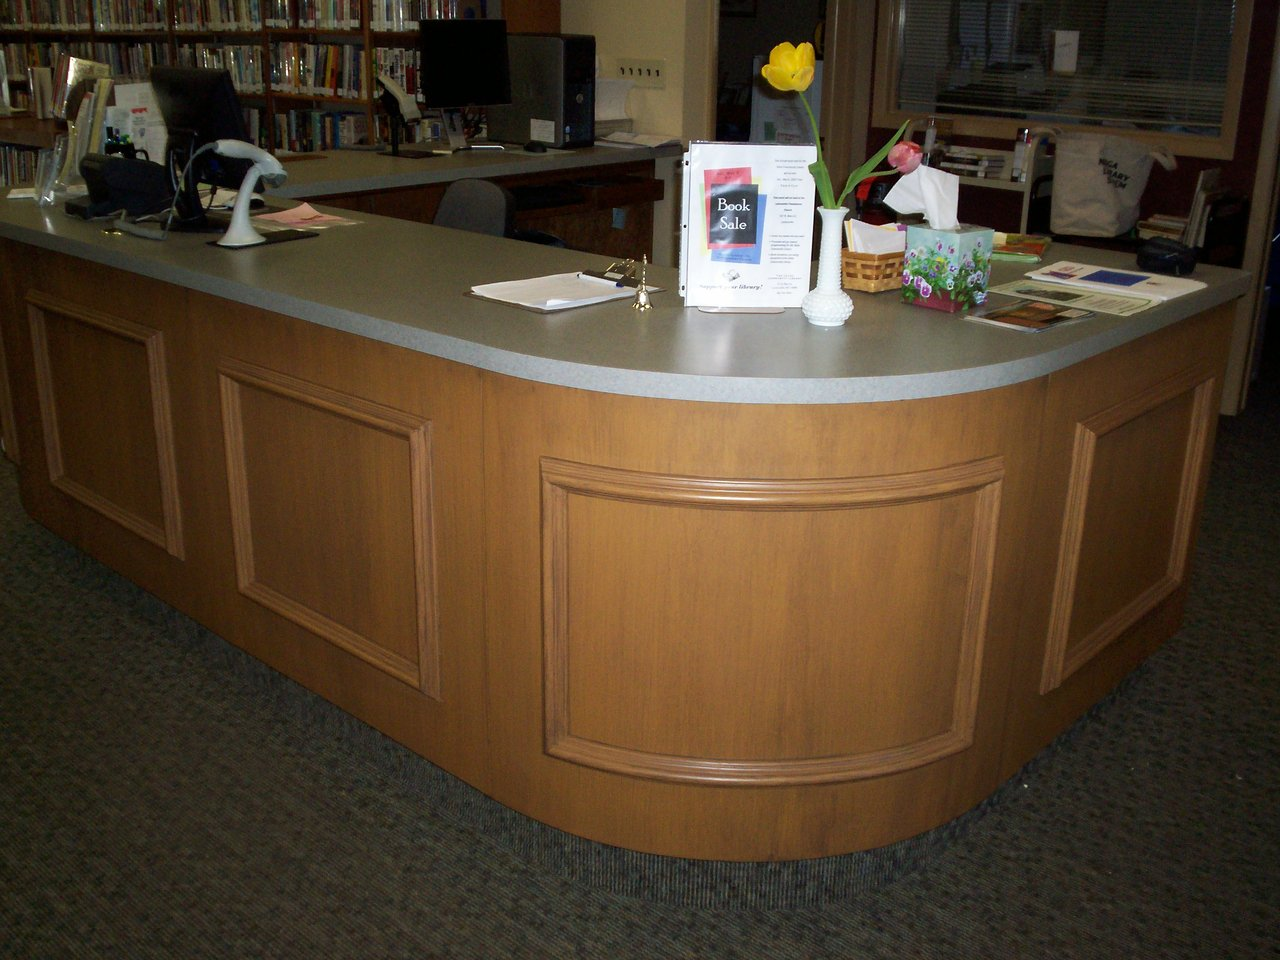 Library front reception desk